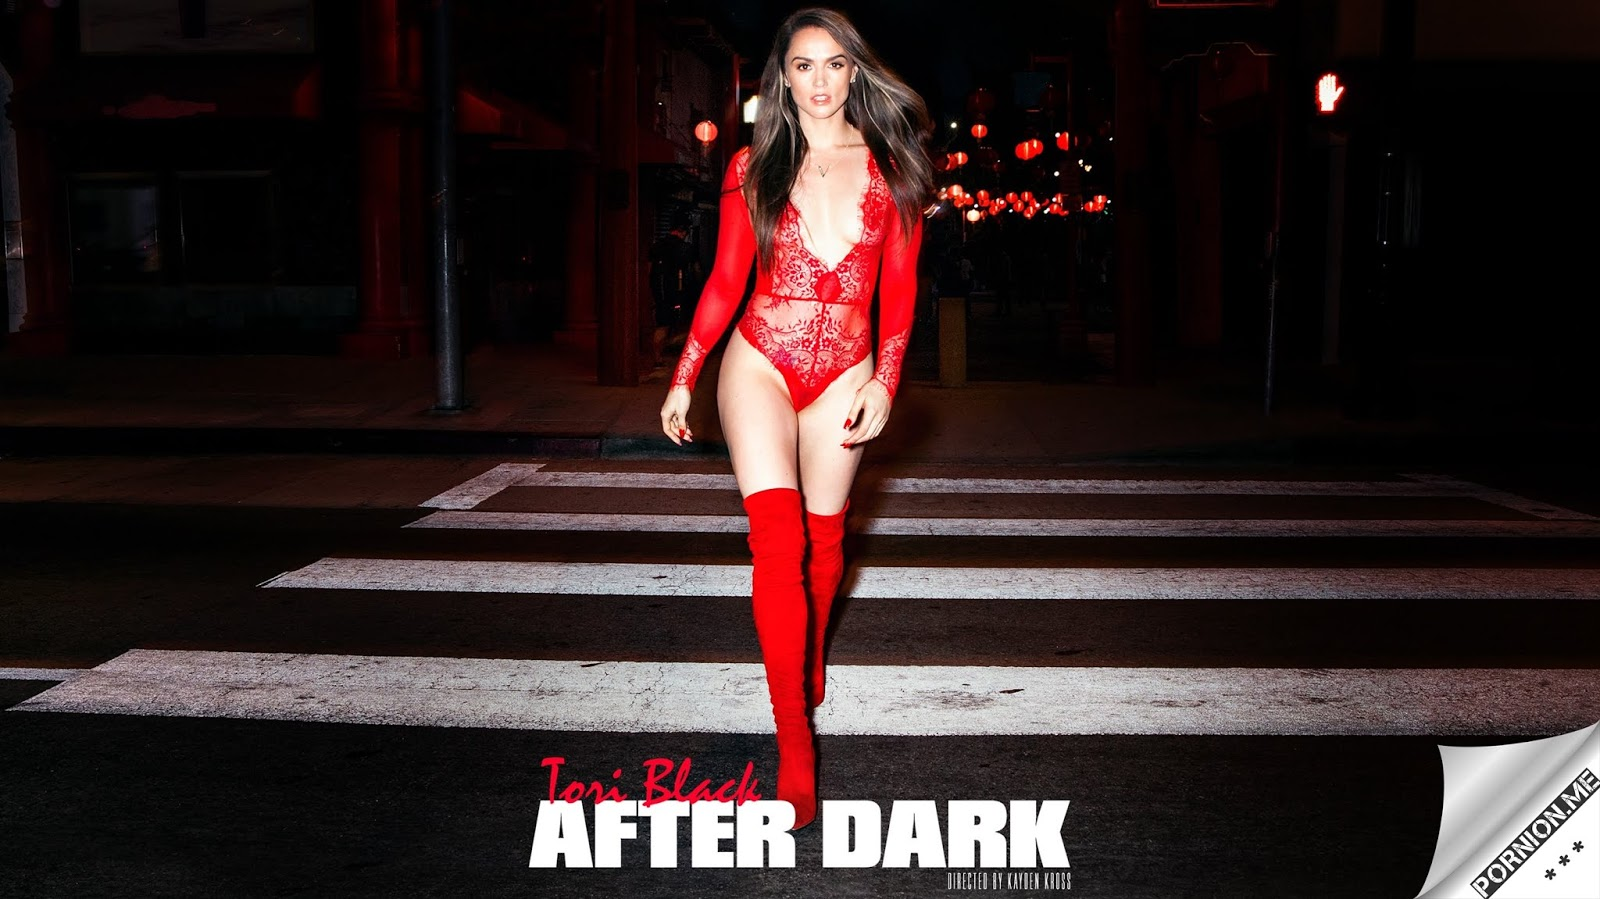 Vixen - Tori Black - After Dark Part 1